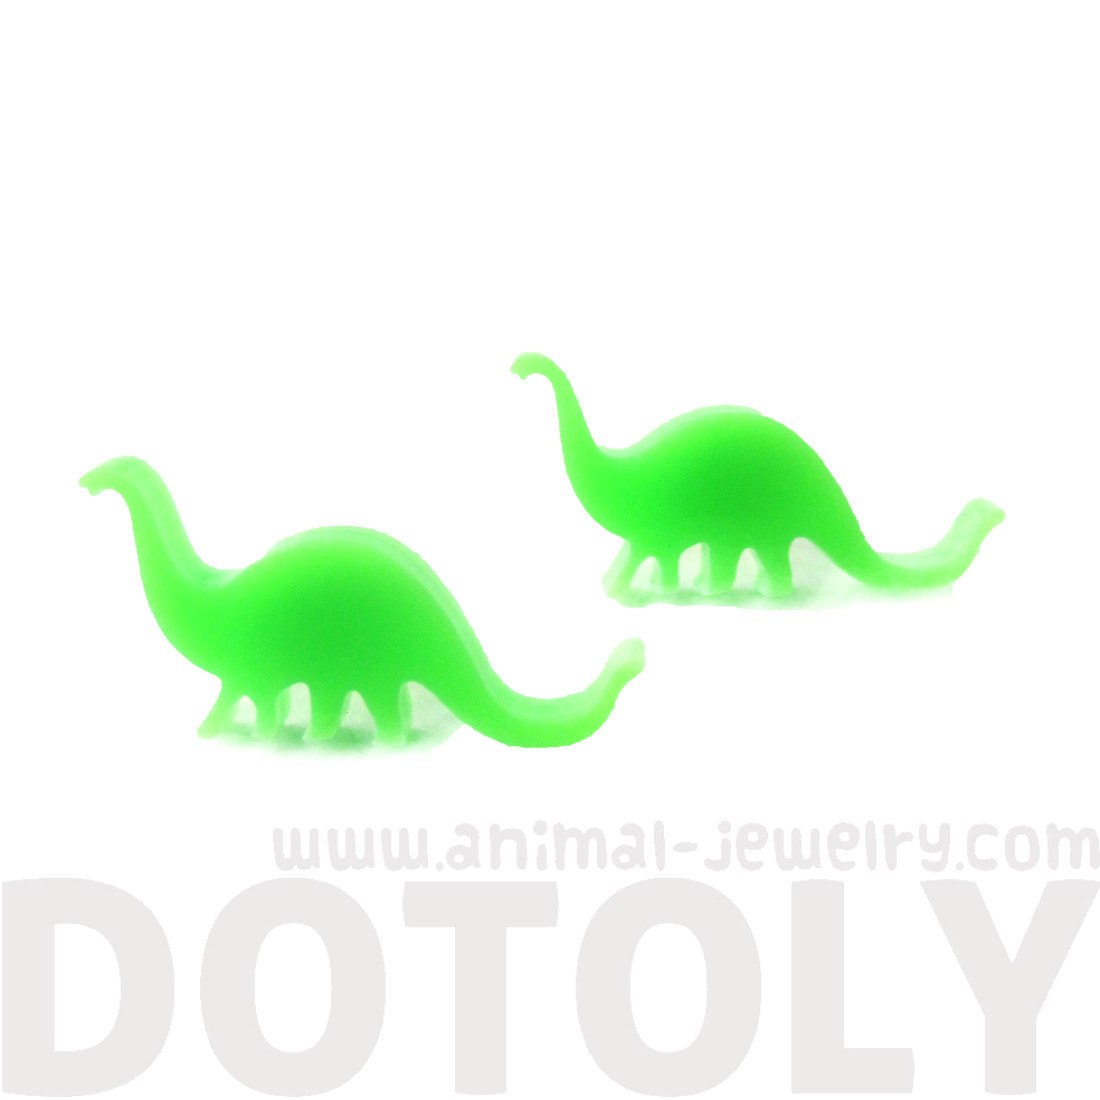 Brontosaurus Silhouette Dinosaur Shaped Laser Cut Green Stud Earrings